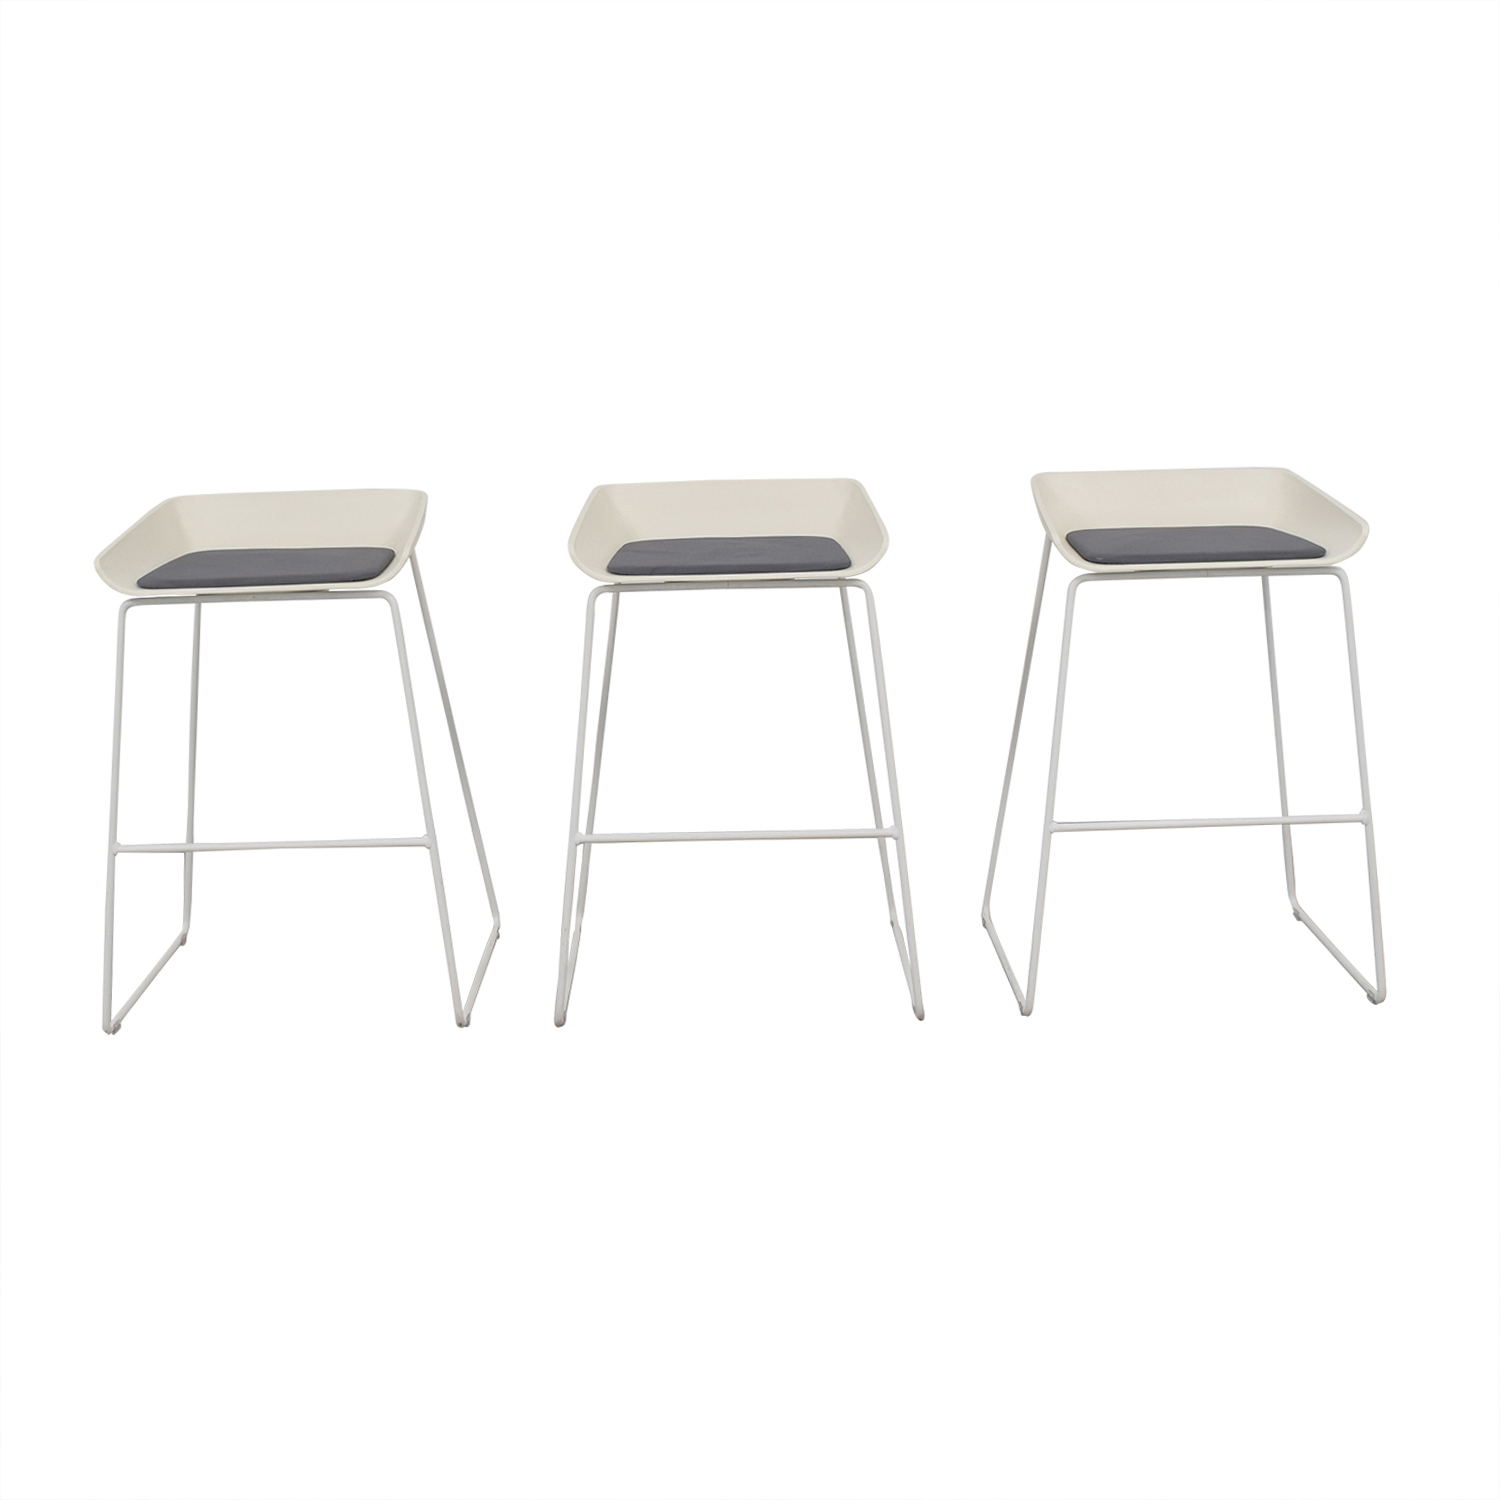 Steelcase Steelcase Scoop Modern Stools white & grey